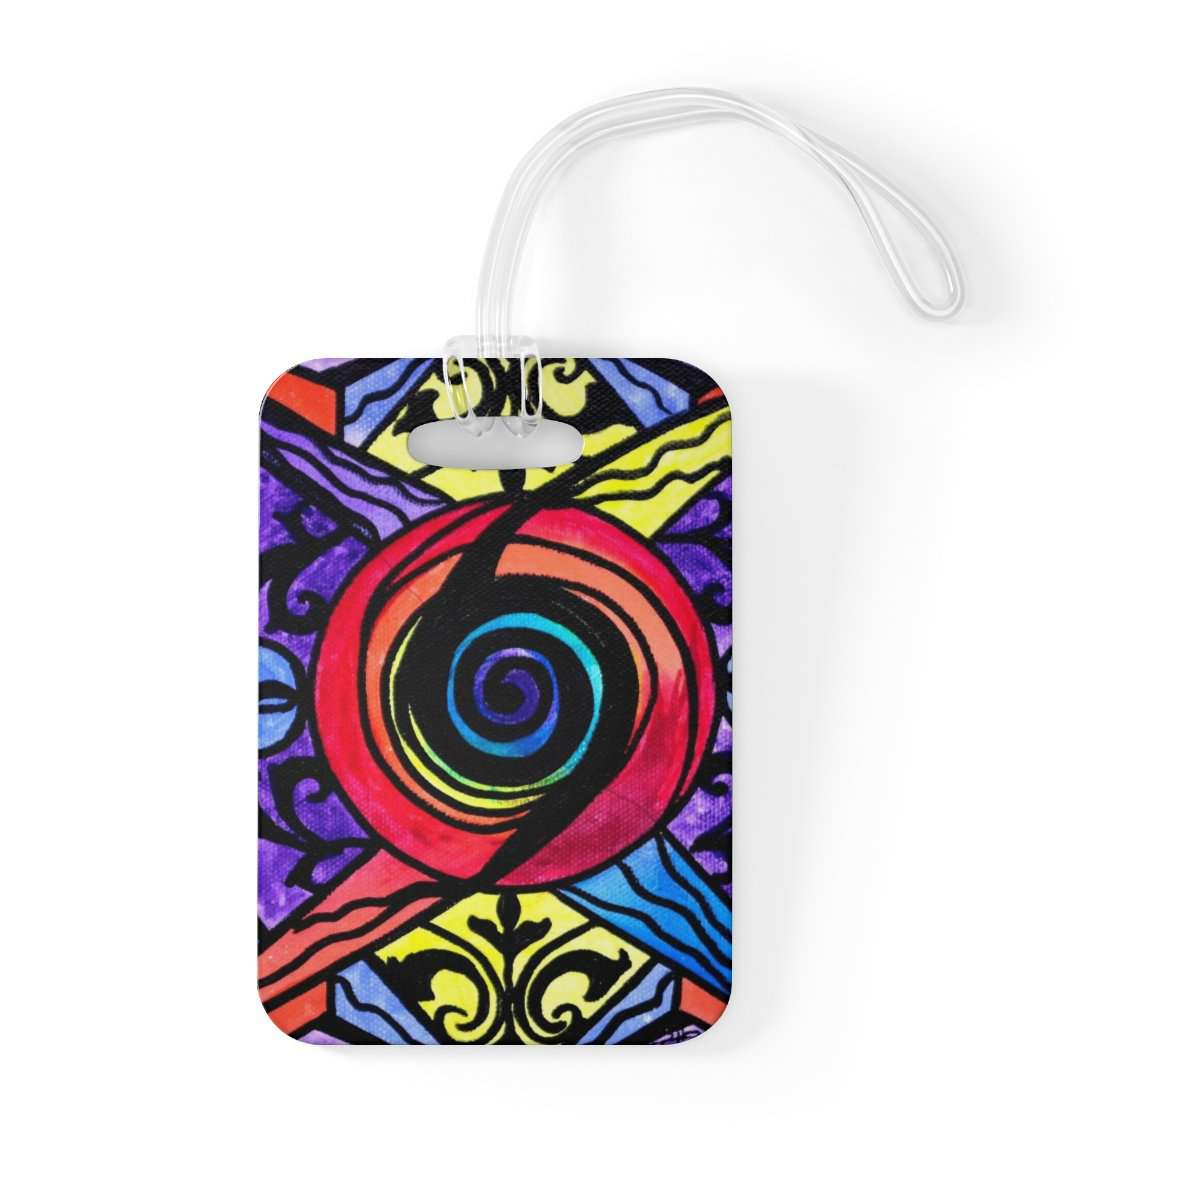 Psychic - Bag Tag